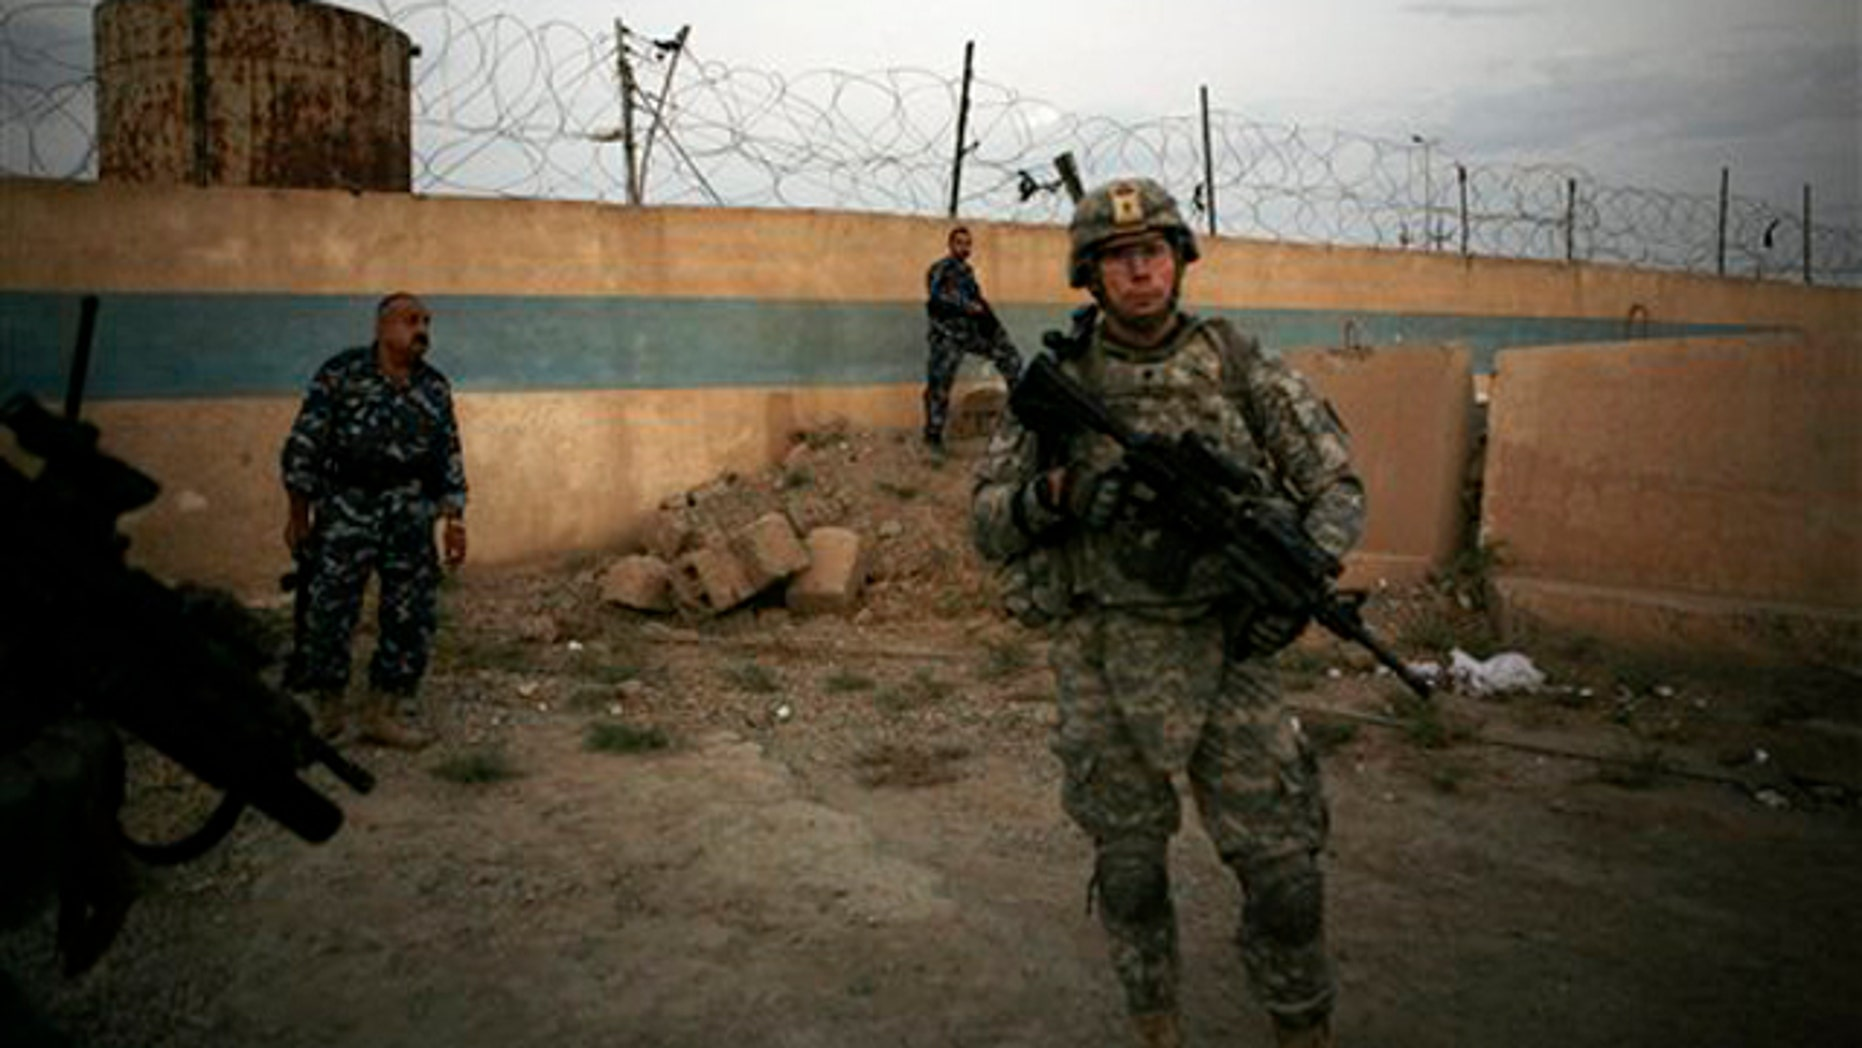 A U.S. Army soldier from 1st Battalion, 14th Infantry Regiment stands with Iraqi policemen outside an Iraqi police station Sept. 1 in Hawija, north of Baghdad, Iraq. (AP Photo)